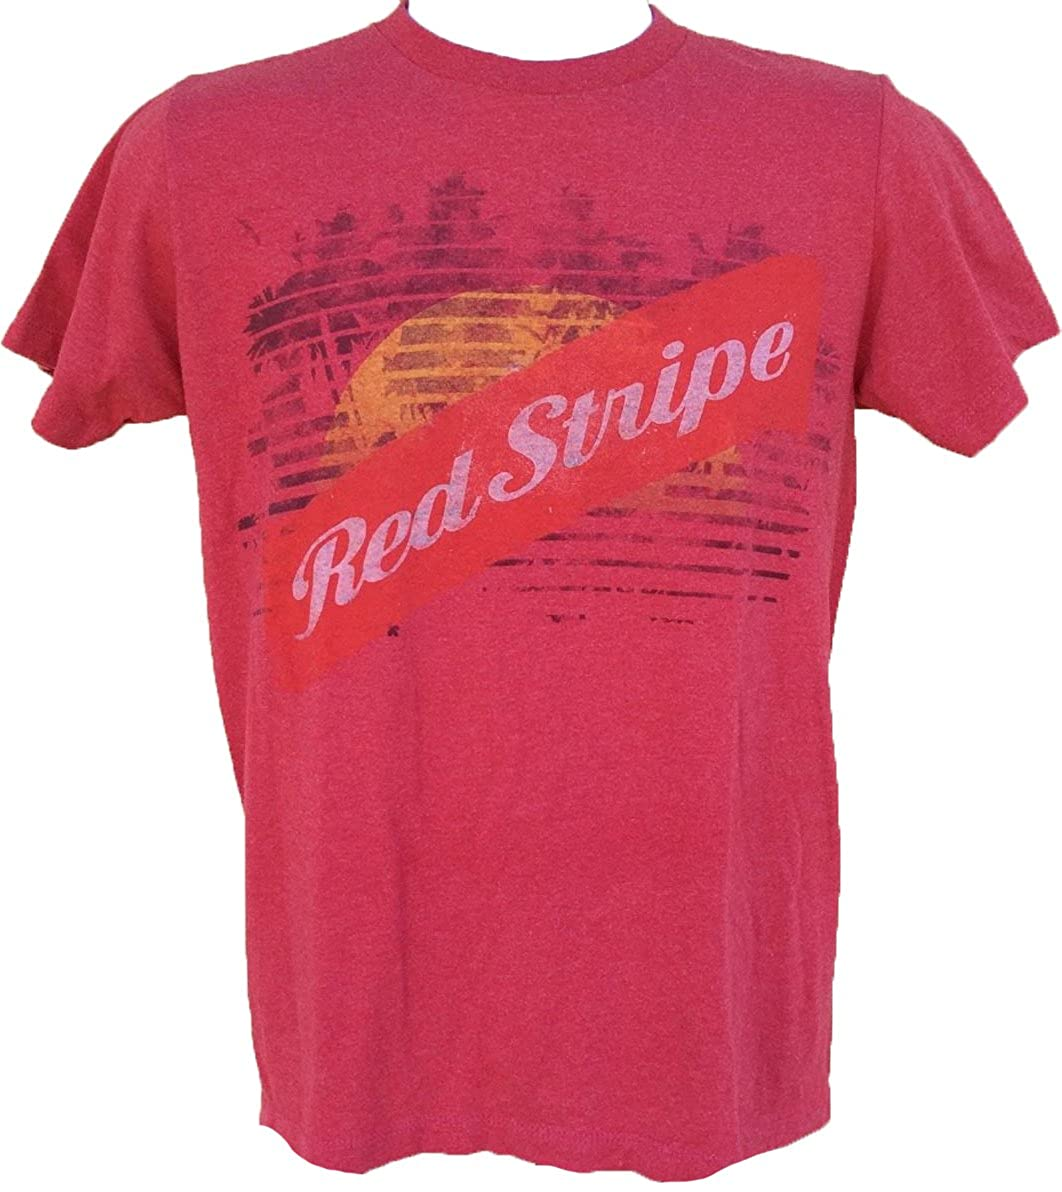 26a9ec544e Amazon.com: Red Stripe Distressed Logo Men's T Shirt (Small): Clothing